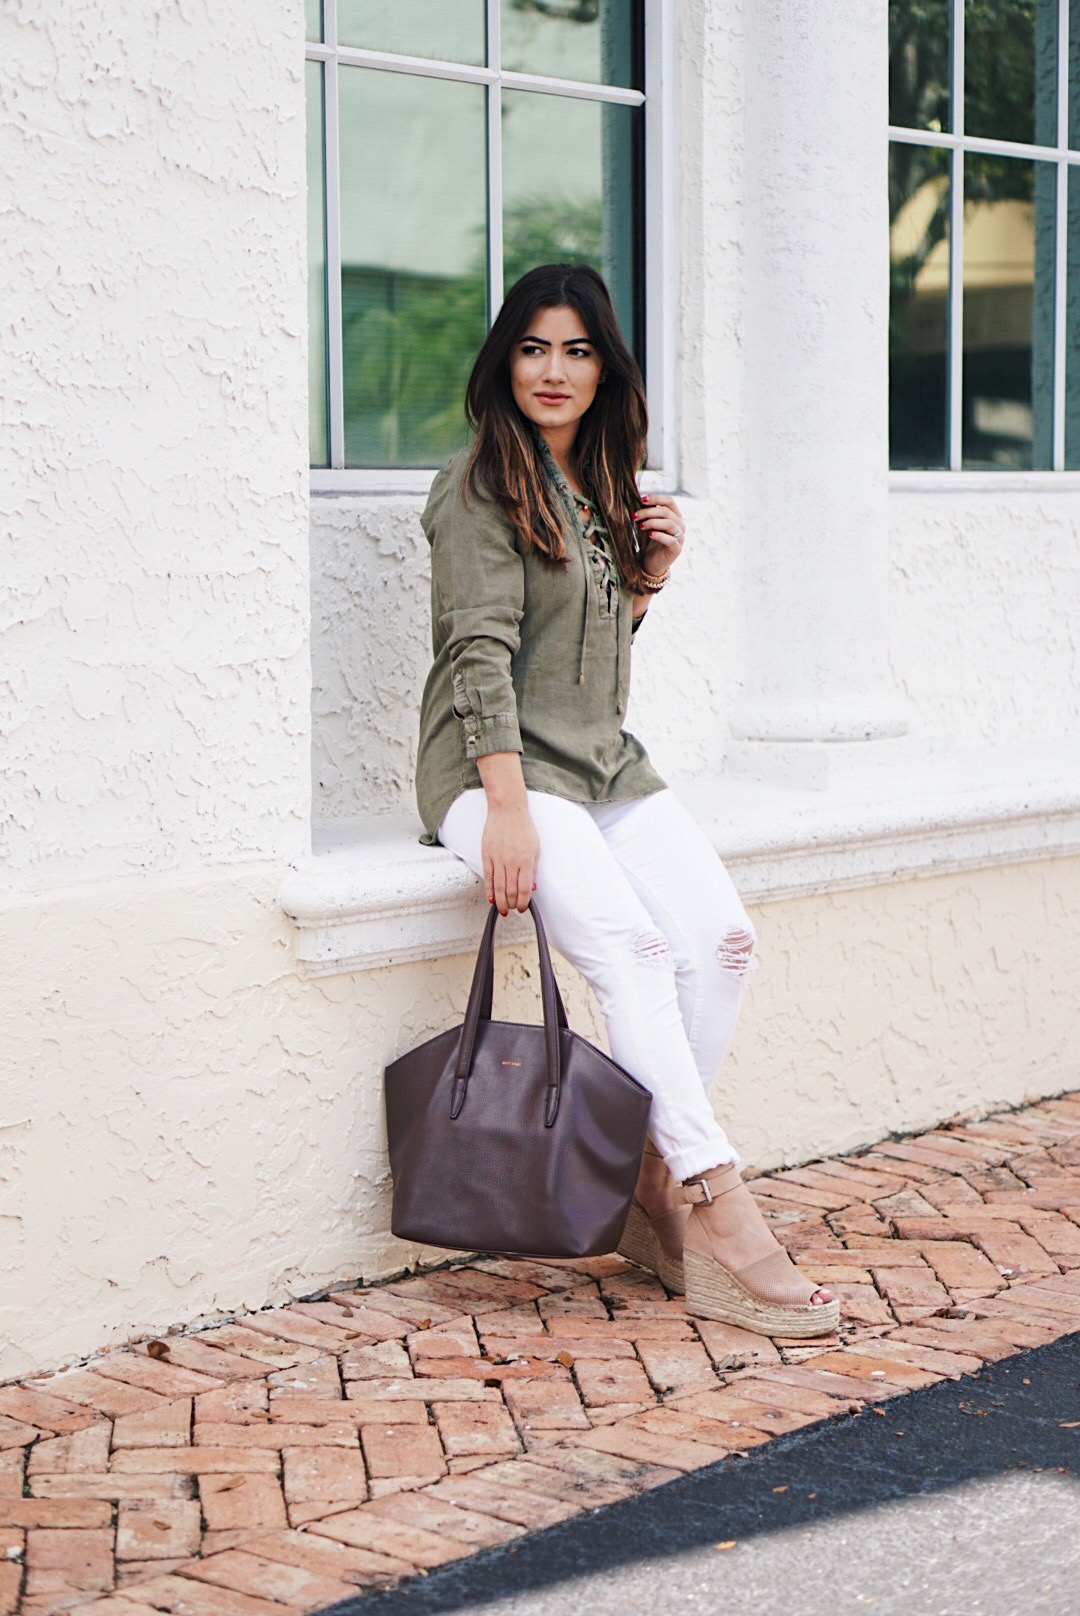 Spring Weekend Outfit With Neutral Colors